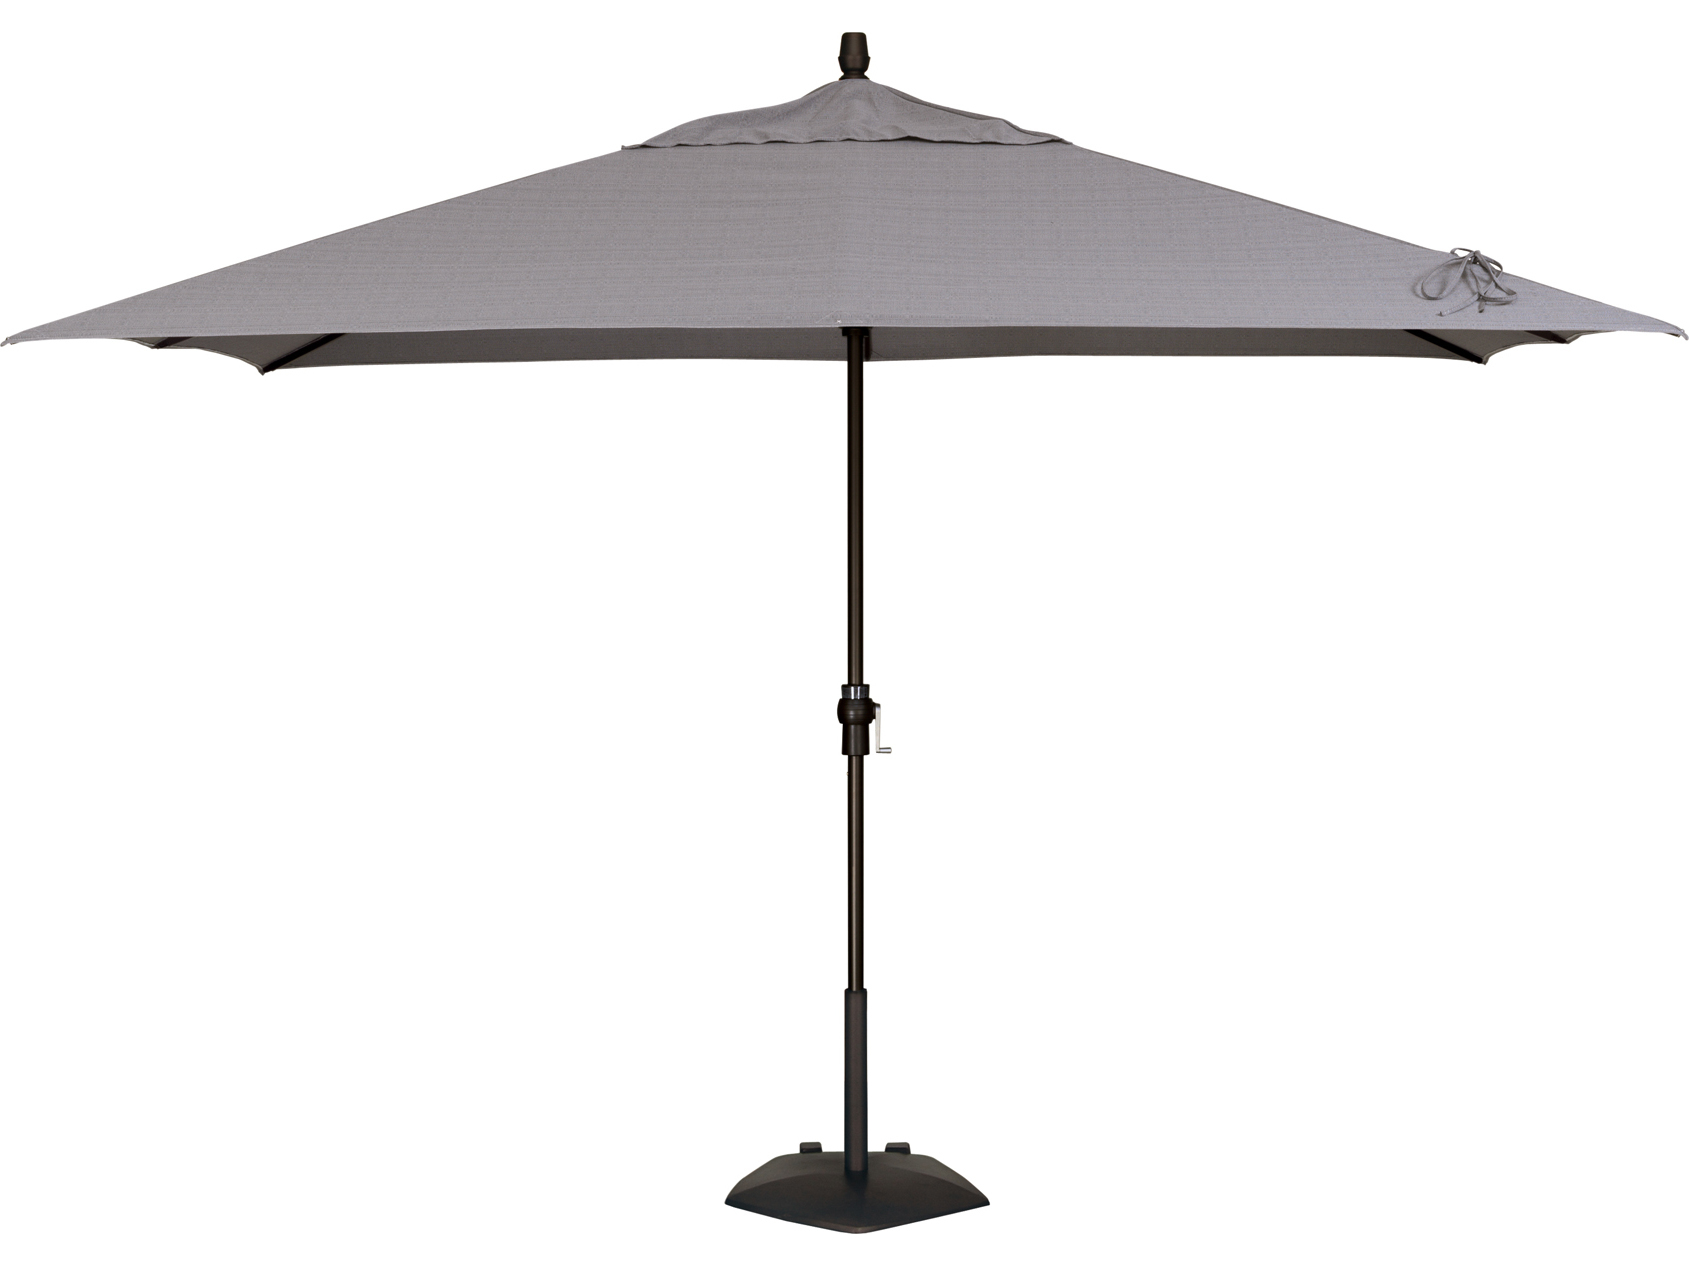 Striped Patio Umbrella | Treasure Garden Cantilever Umbrella | Garden Treasures Offset Umbrella